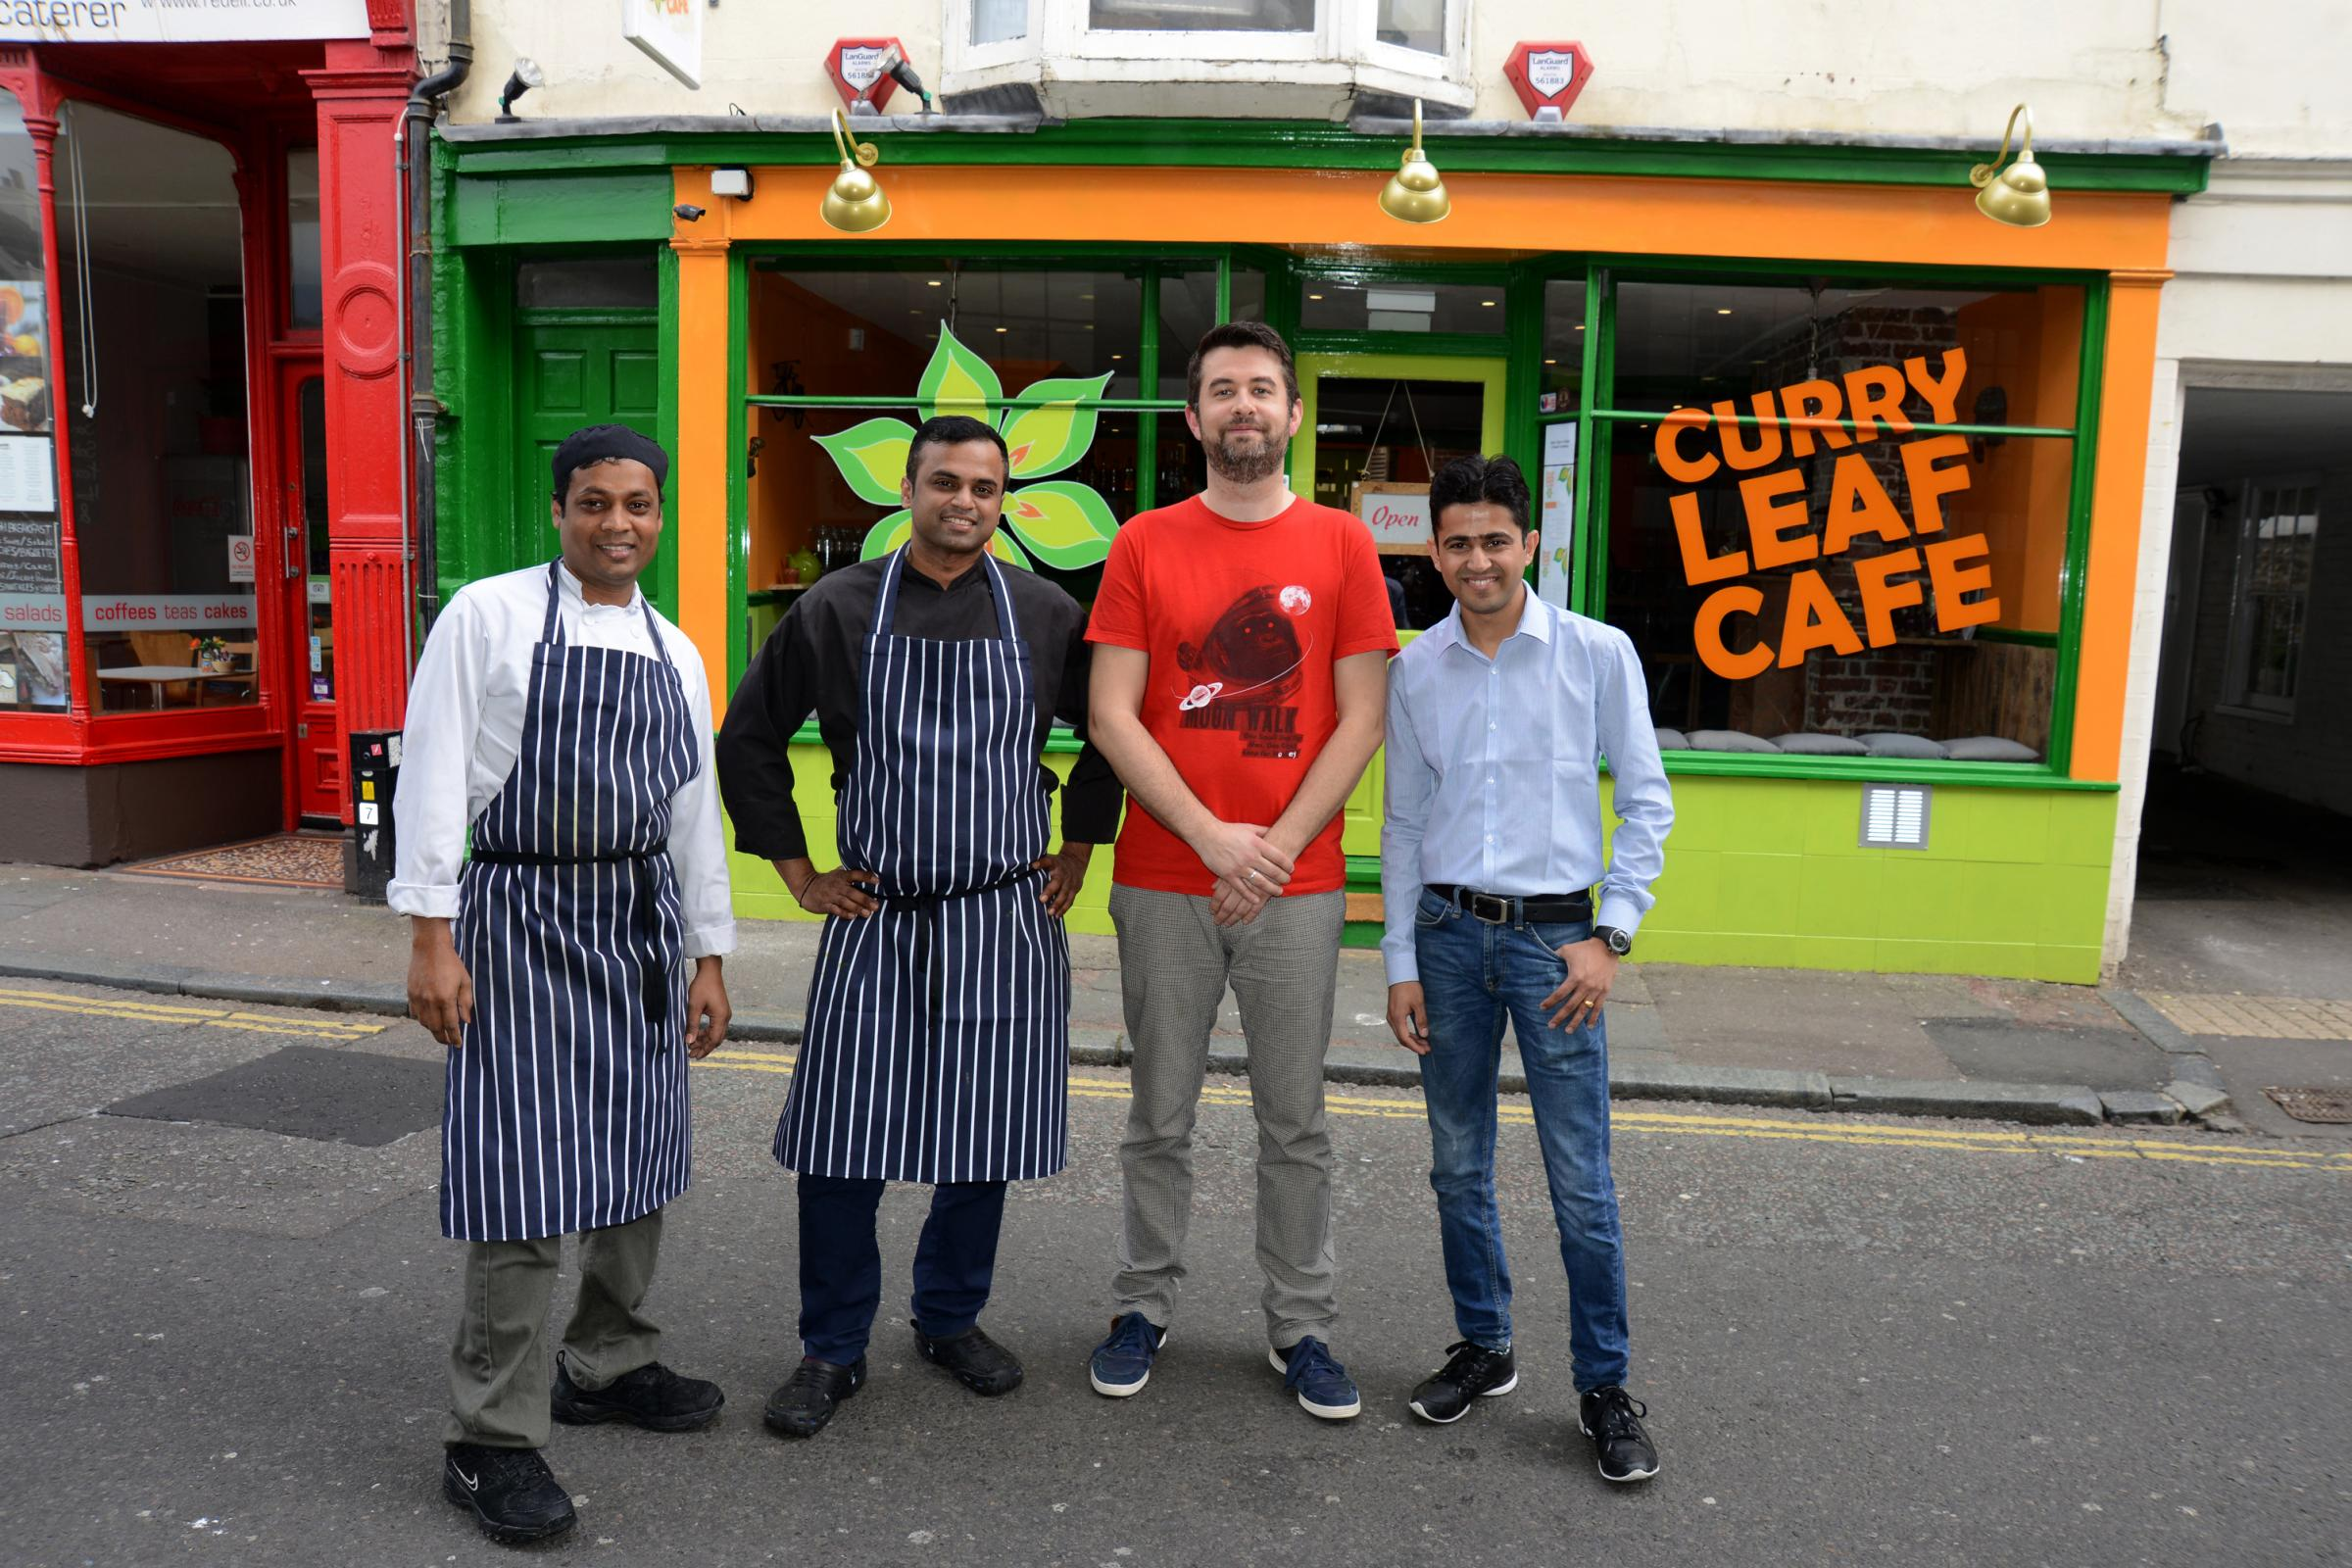 Curry Leaf Cafe Rockets To Top Of The Restaurant Charts